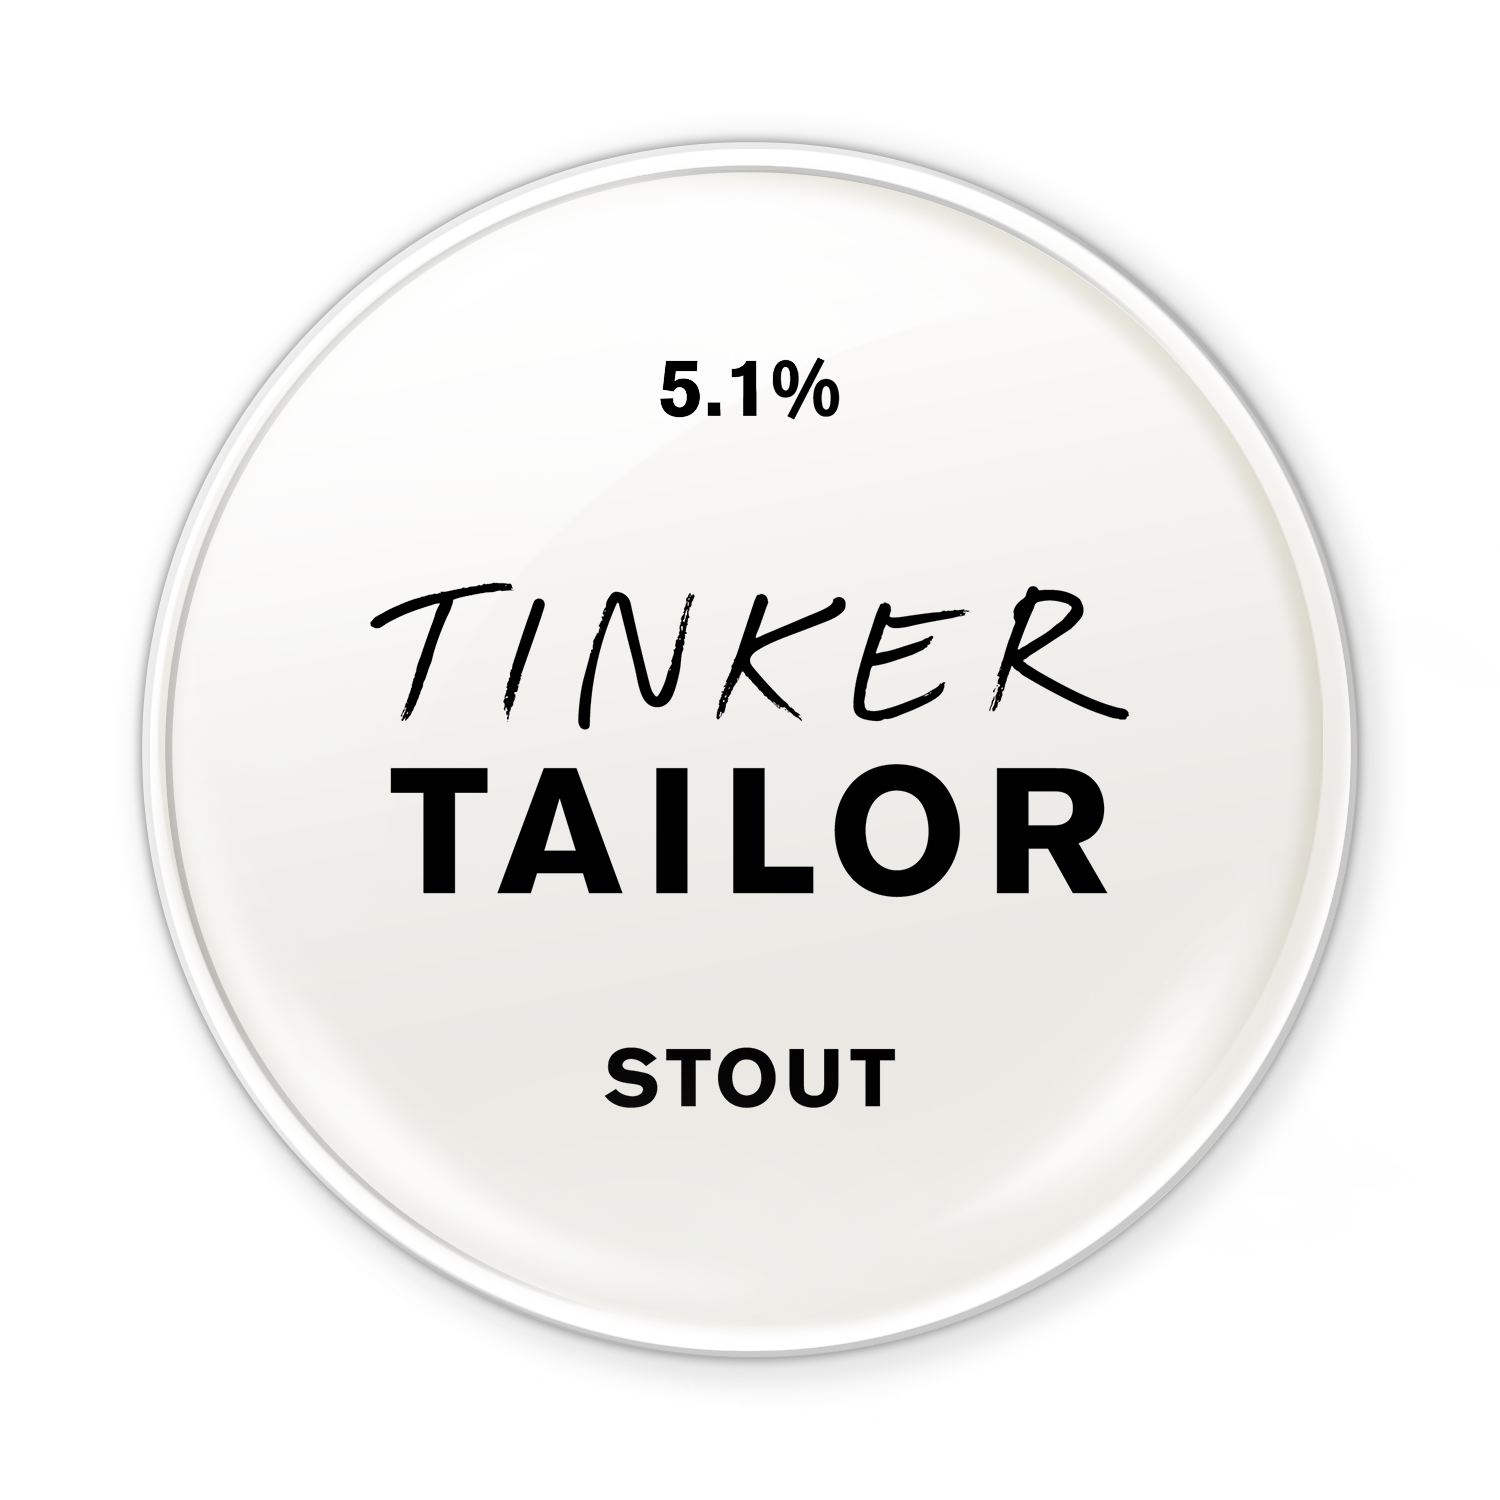 Stout - Our Stout is tailored true-to-style. Indulge yourself with roasted chocolate malt and notes of creamy mocha, blended with a toffee sweetness. Deep, dark and decadent.The perfect partner for a rich venison pie. Or, for a timeless combo, serve with oysters.5.1%